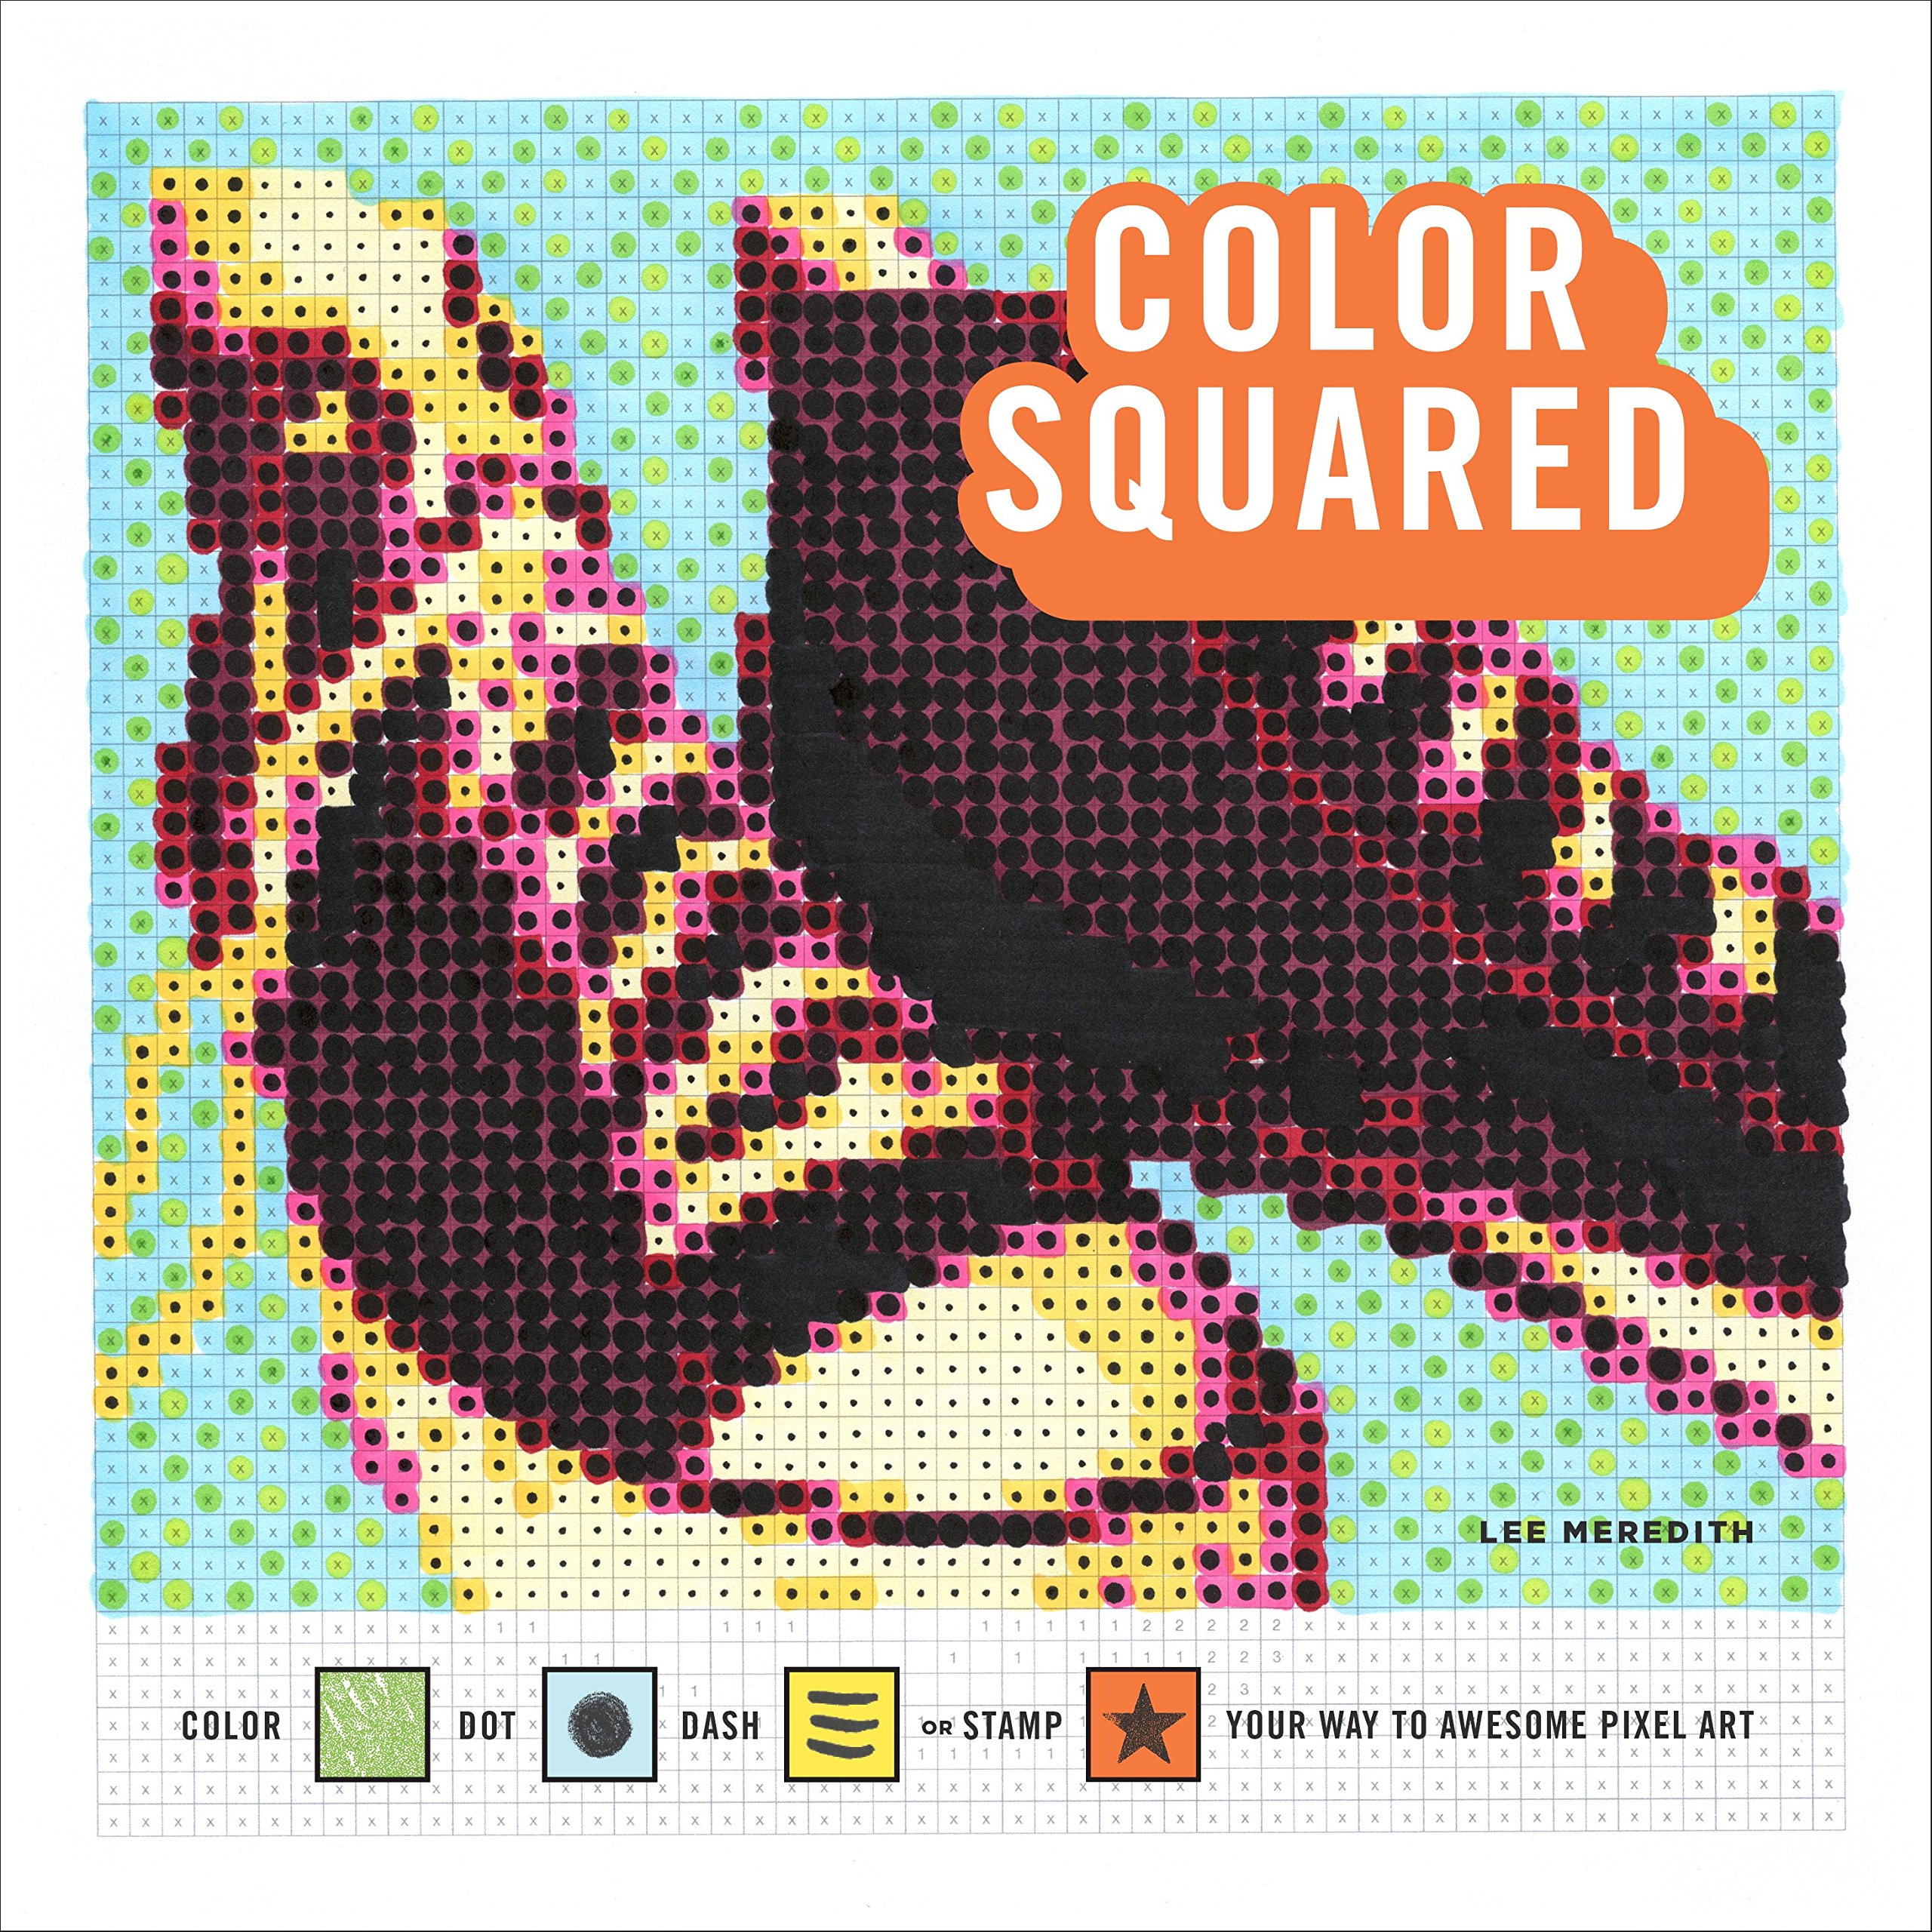 Buy Color Squared Color Dot Dash Or Stamp Your Way To Awesome Pixel Art Book Online At Low Prices In India Color Squared Color Dot Dash Or Stamp Your Way To